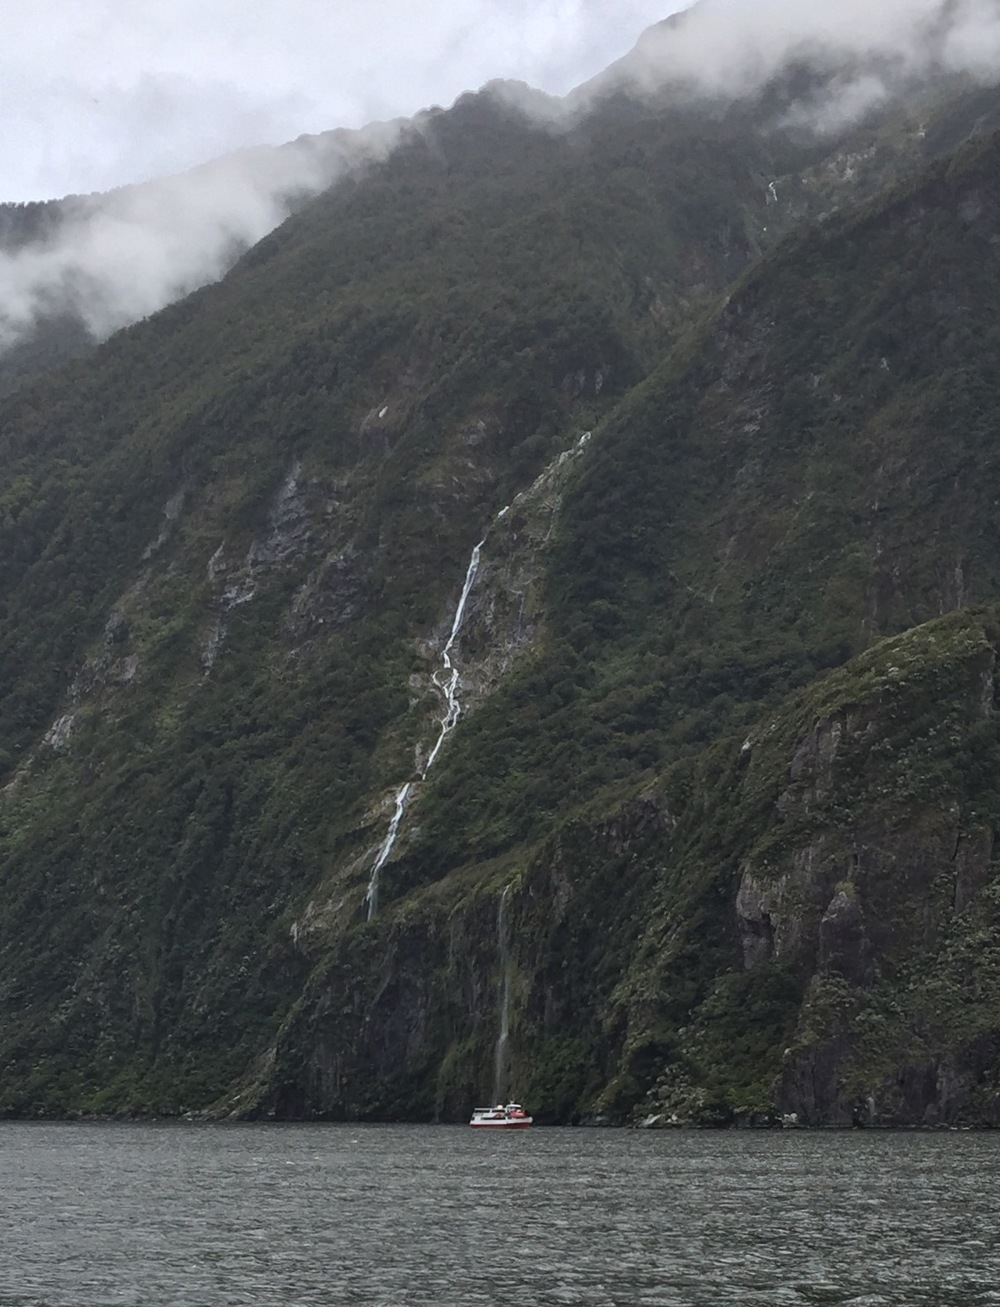 Cruising along the fiords of Milford Sound; for scale, note the 50 foot boat near the bottom center of the photo.